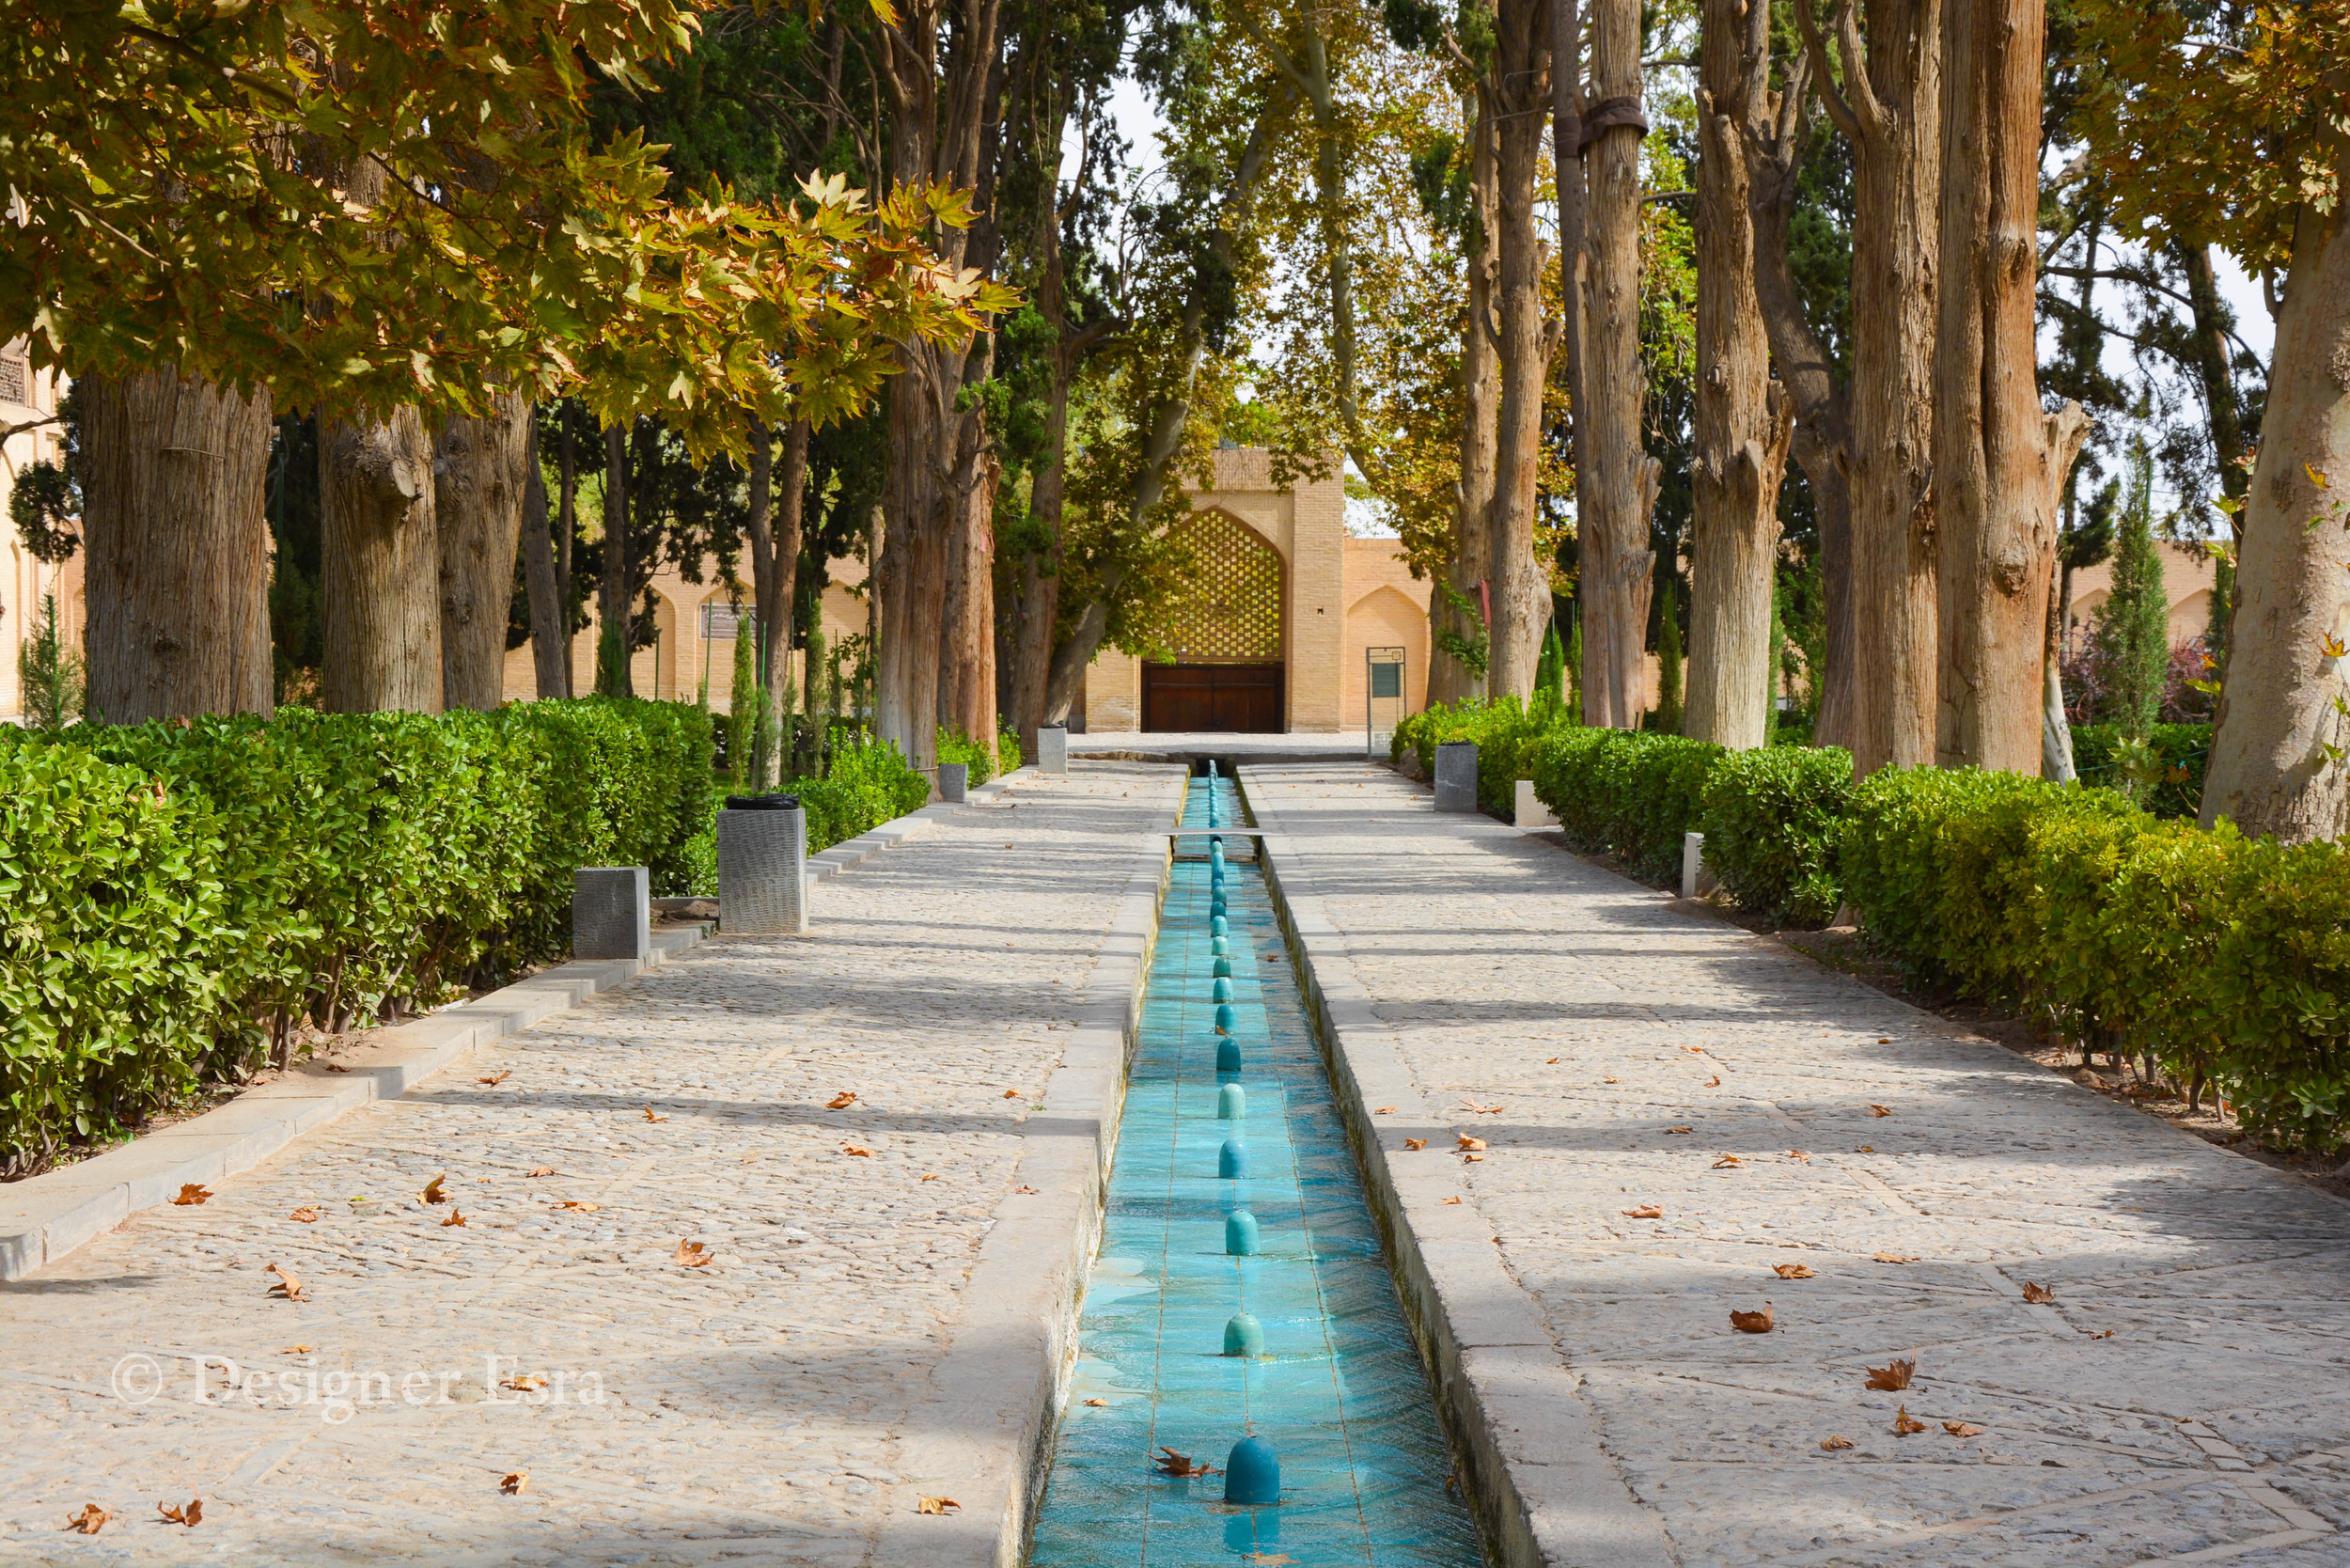 One of the most beautiful Persian Gardens in Iran